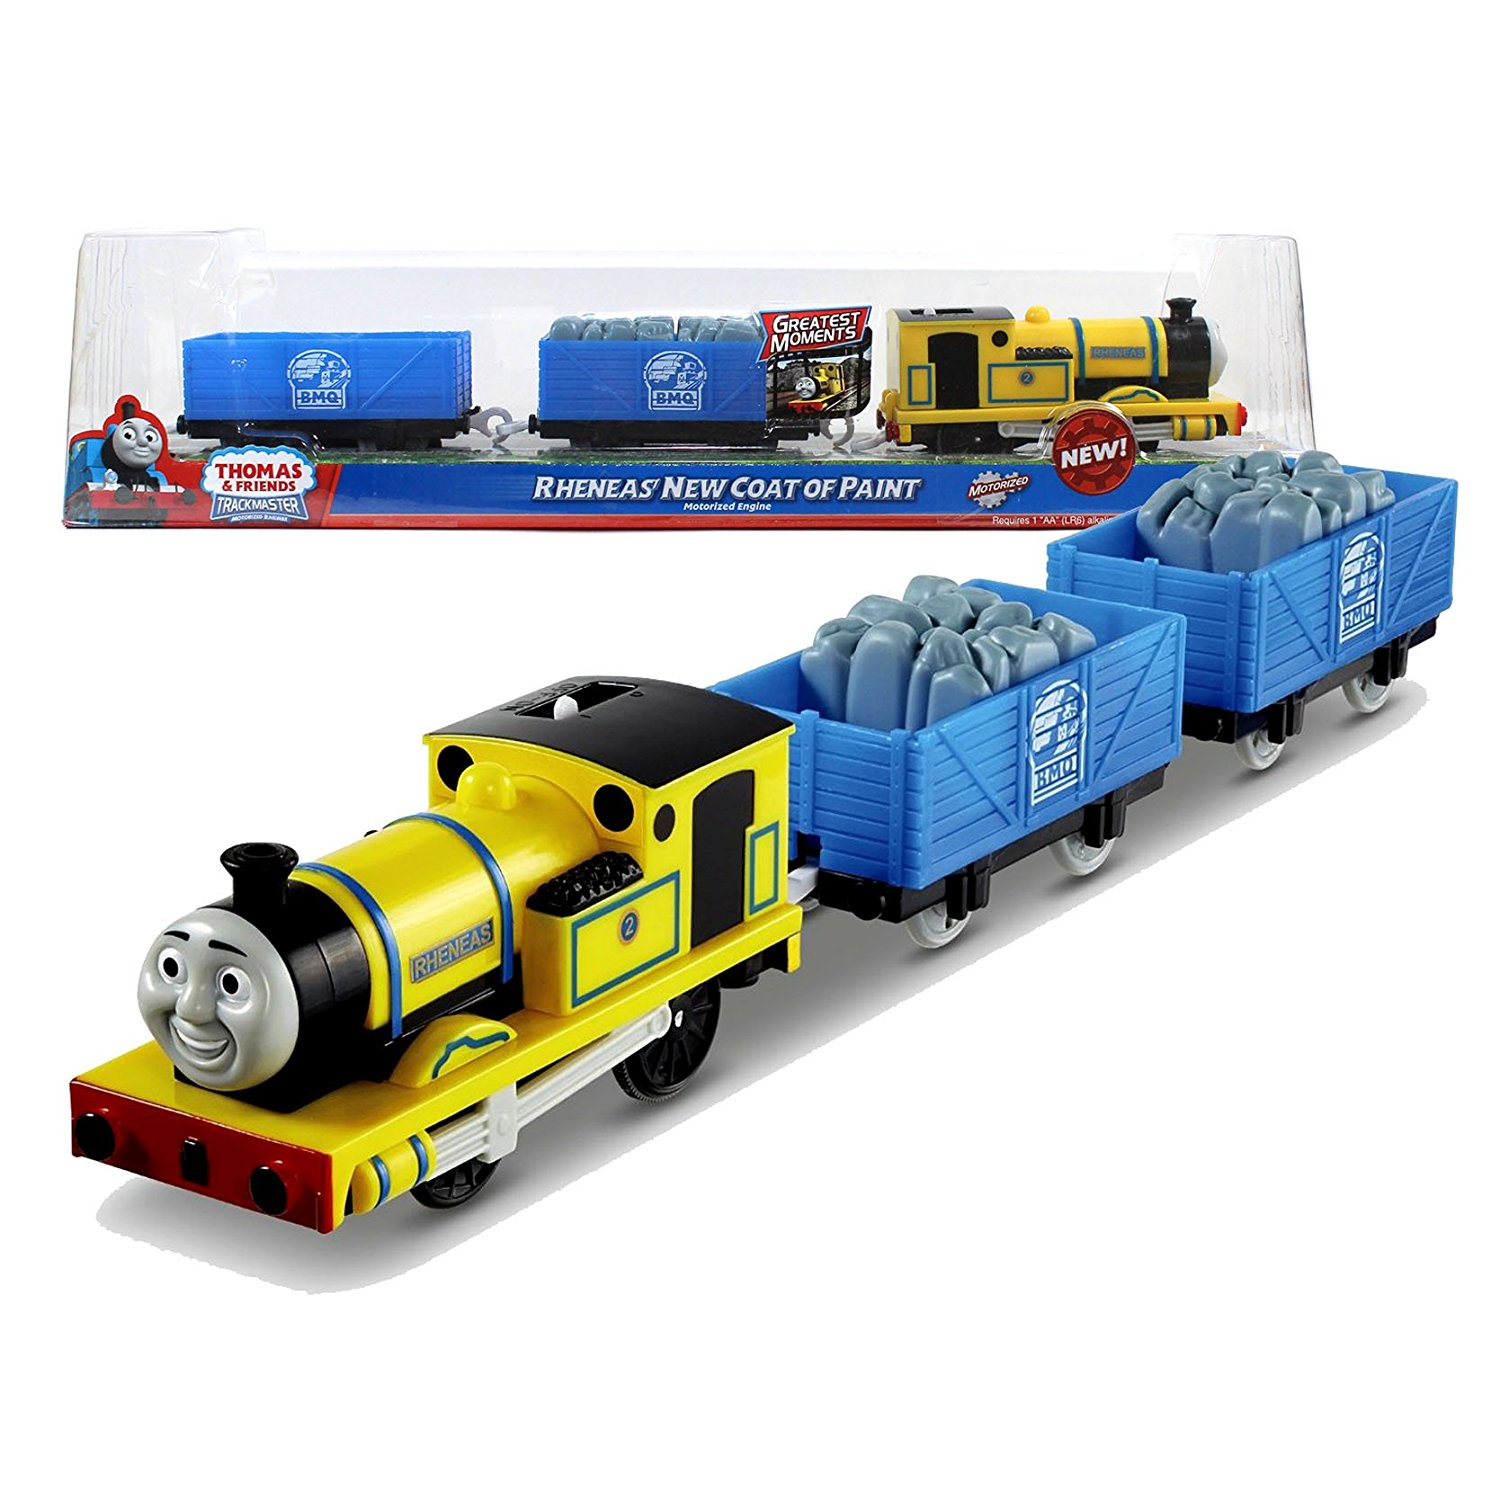 "Fisher Price Year 2012 Thomas and Friends Greatest Moments Series ""Blue Mountain Mystery"" Trackmaster Motorized Railway Battery Powered Tank Engine 3 Pack Train Set - RHENEAS' NEW COAT OF PAINT with Rheneas Engine, Blue Mountain Quarry Truck with Stone and Blue Mountain Quarry Truck (X0765)"